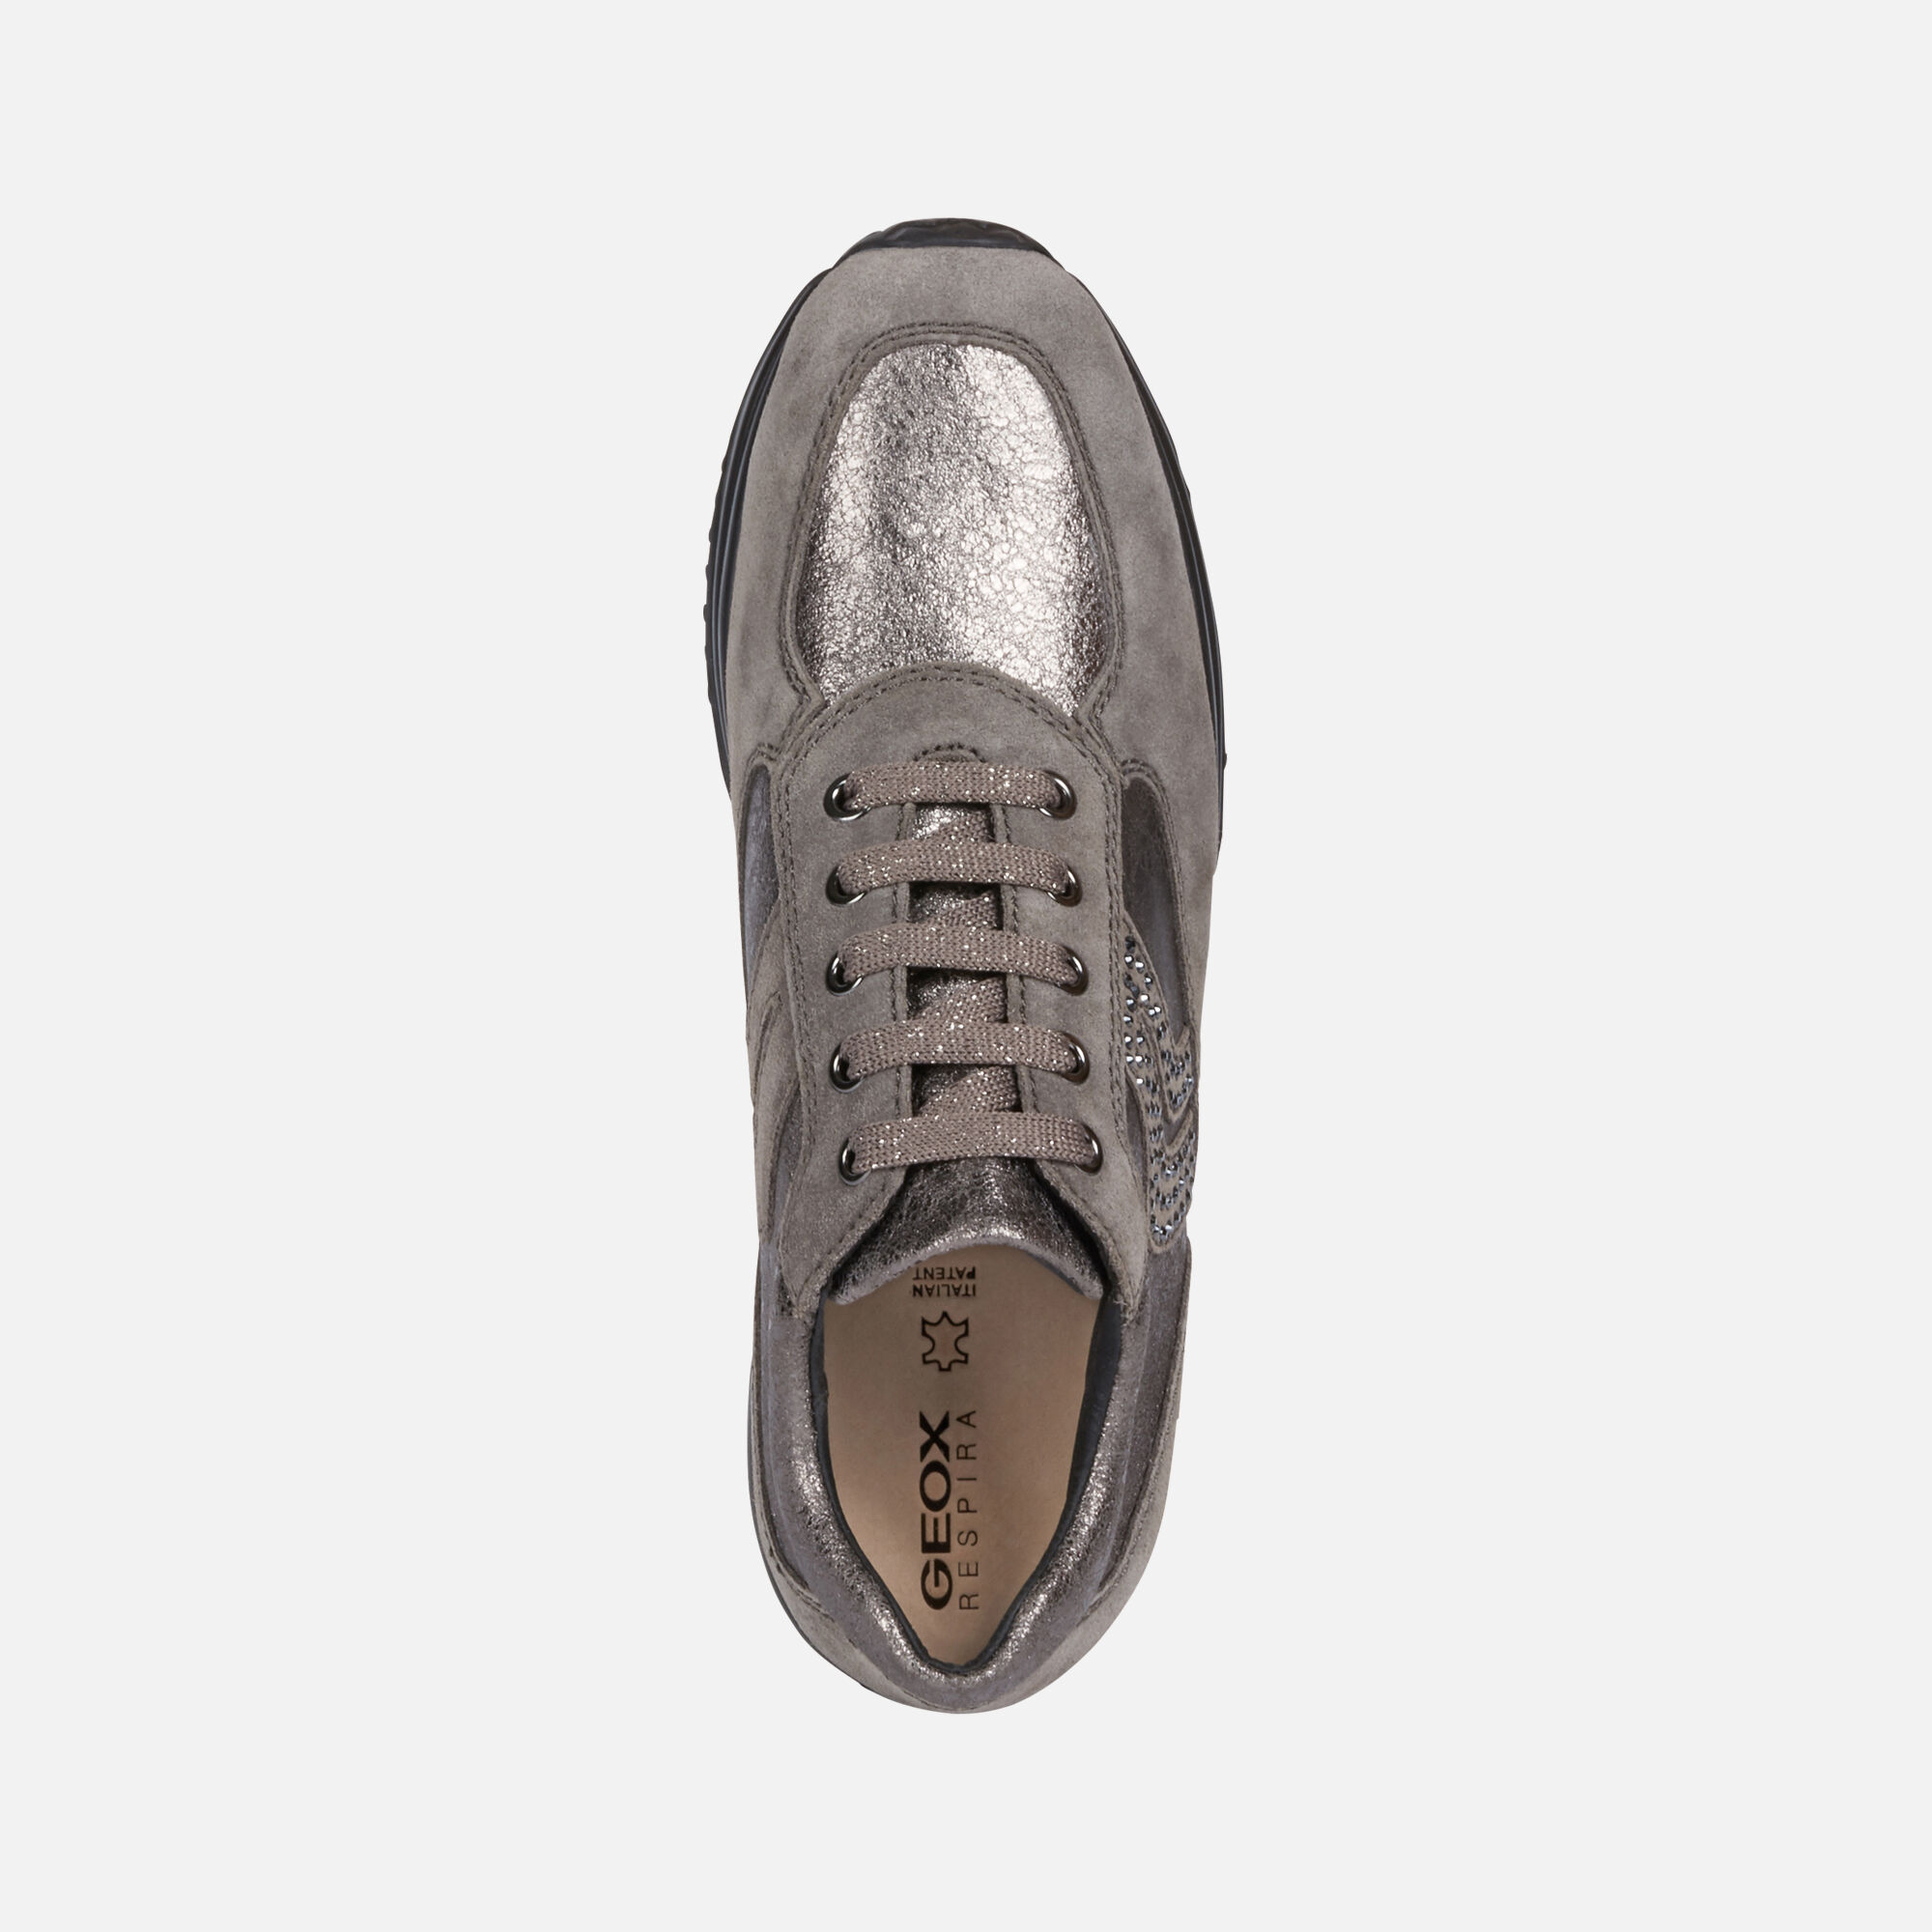 Geox HAPPY Donna: Sneakers Basse Piombo | Geox ®